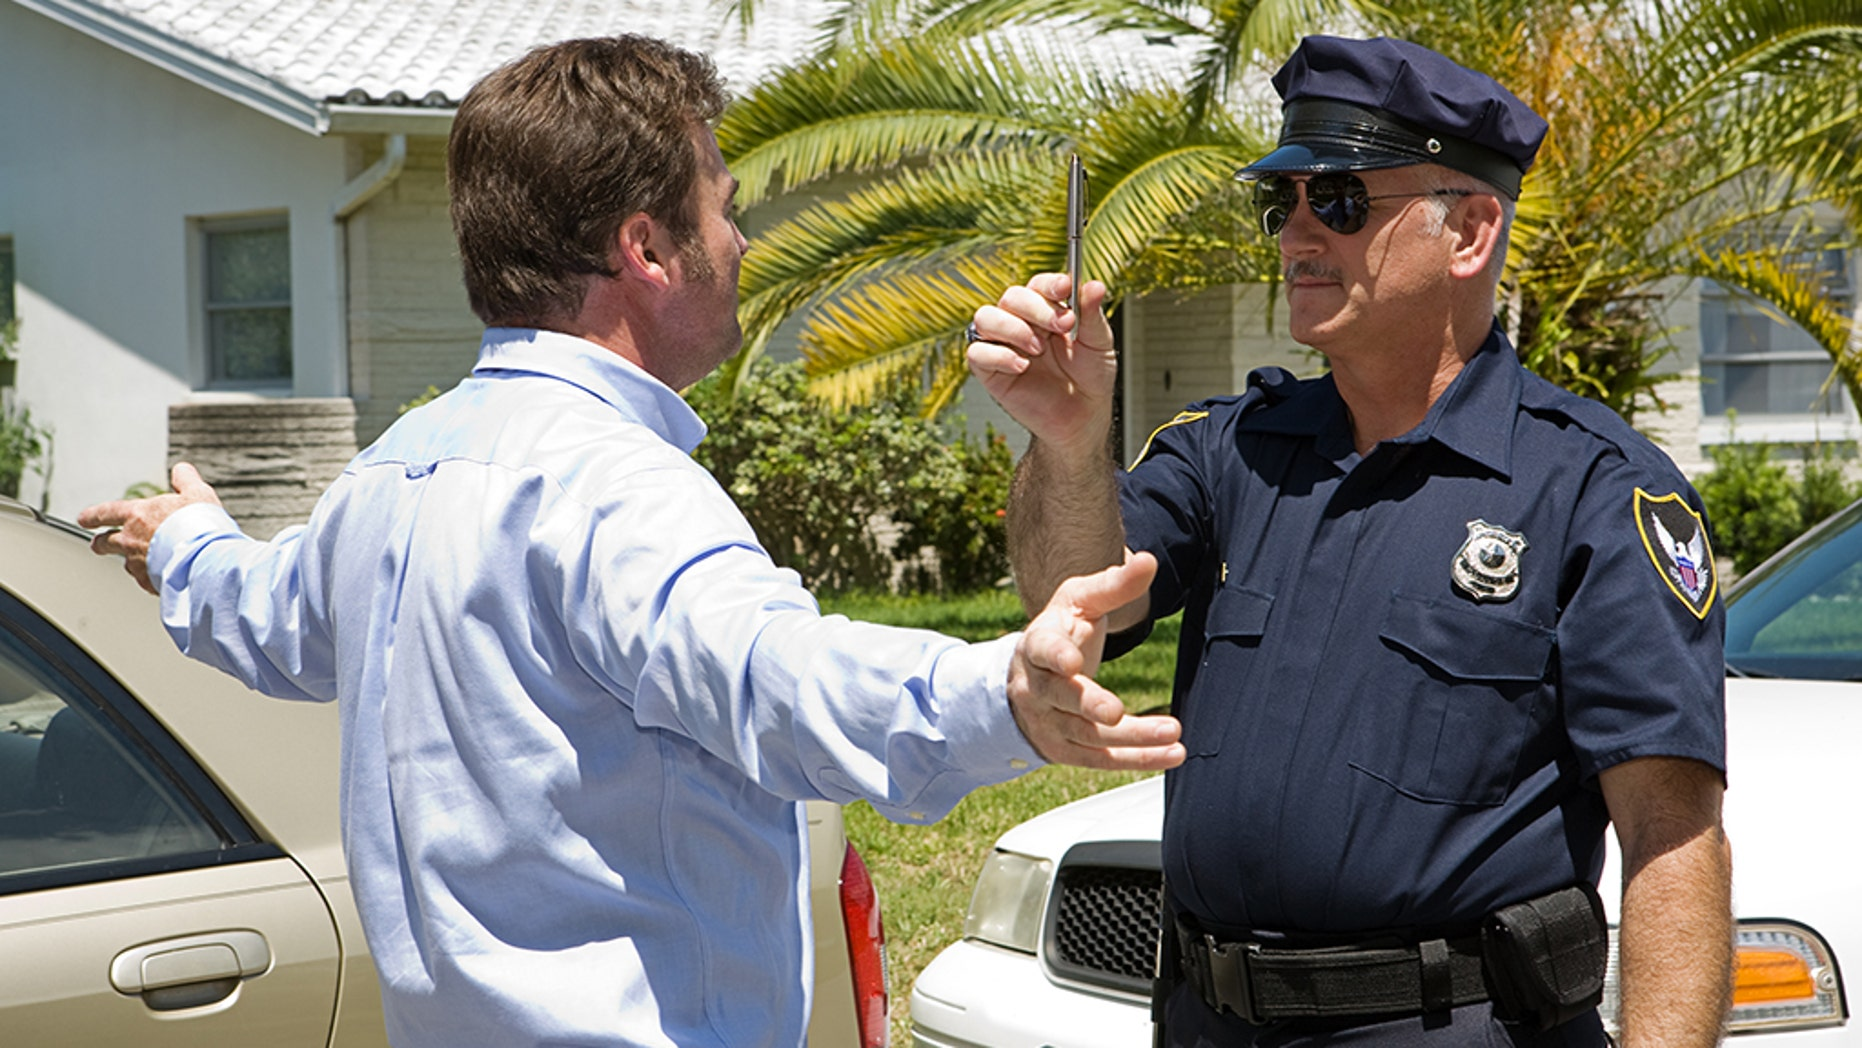 Police in Kutztown, Pennsylvania are calling on volunteers to get drunk on their dime and serve as test subjects to train new officers in field sobriety tests